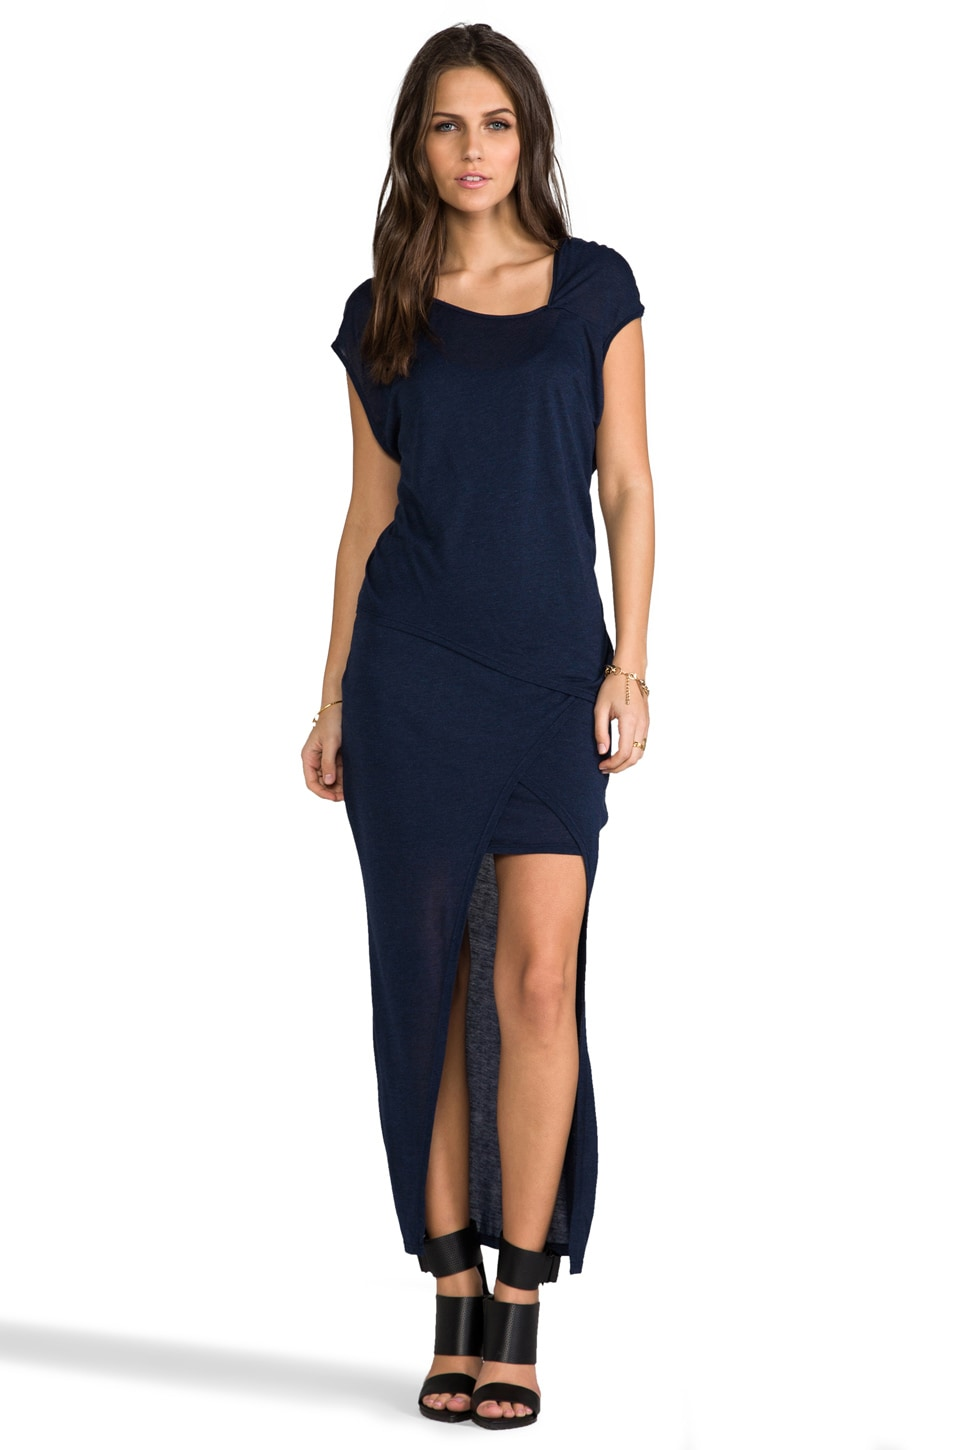 Heather Asymmetrical Double Drape Dress in Heather Midnight